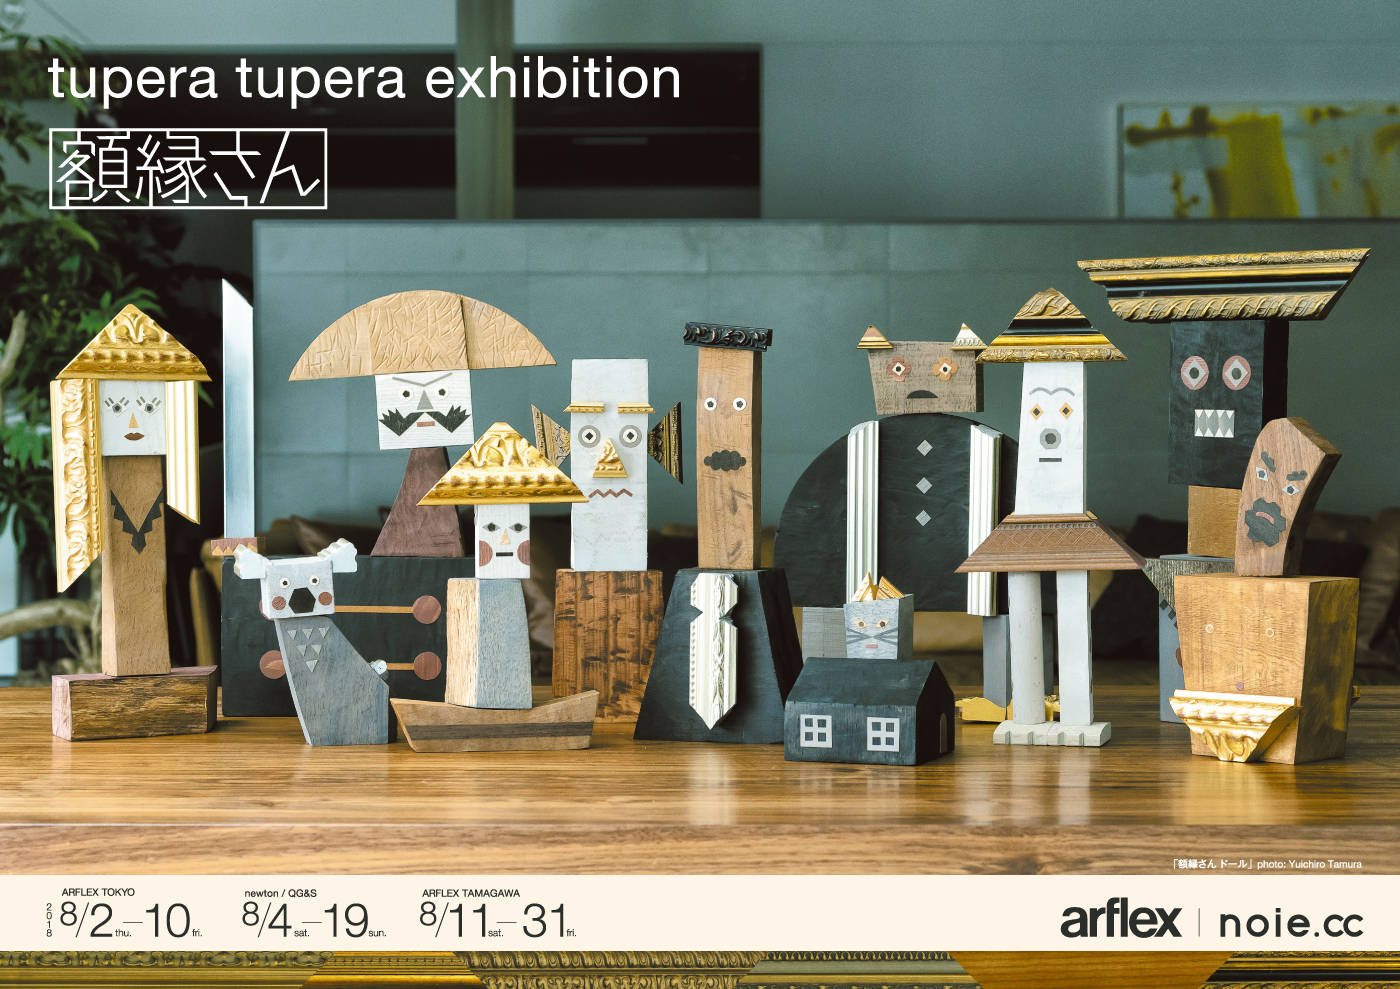 tupera tupera exhibition 額縁さん